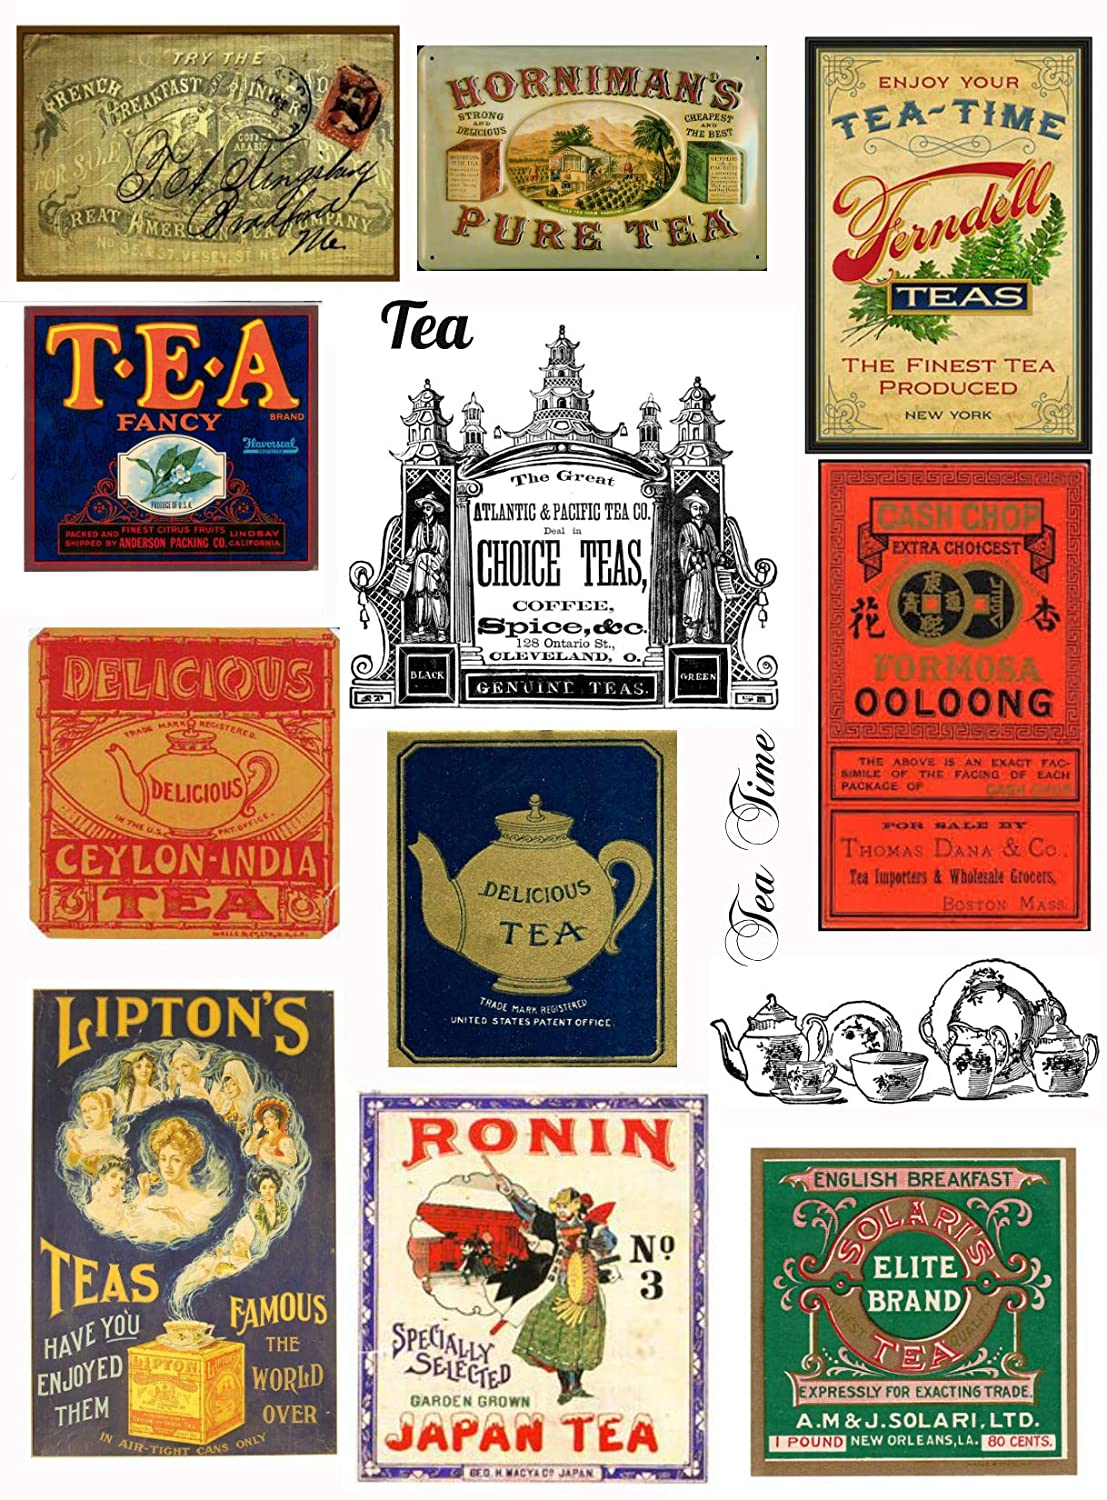 Assorted Vintage Ephemera Tea Label Images #1 on Collage Sheet for Art, Scrapbooking, Collage, Decoupage Paper Moon Media